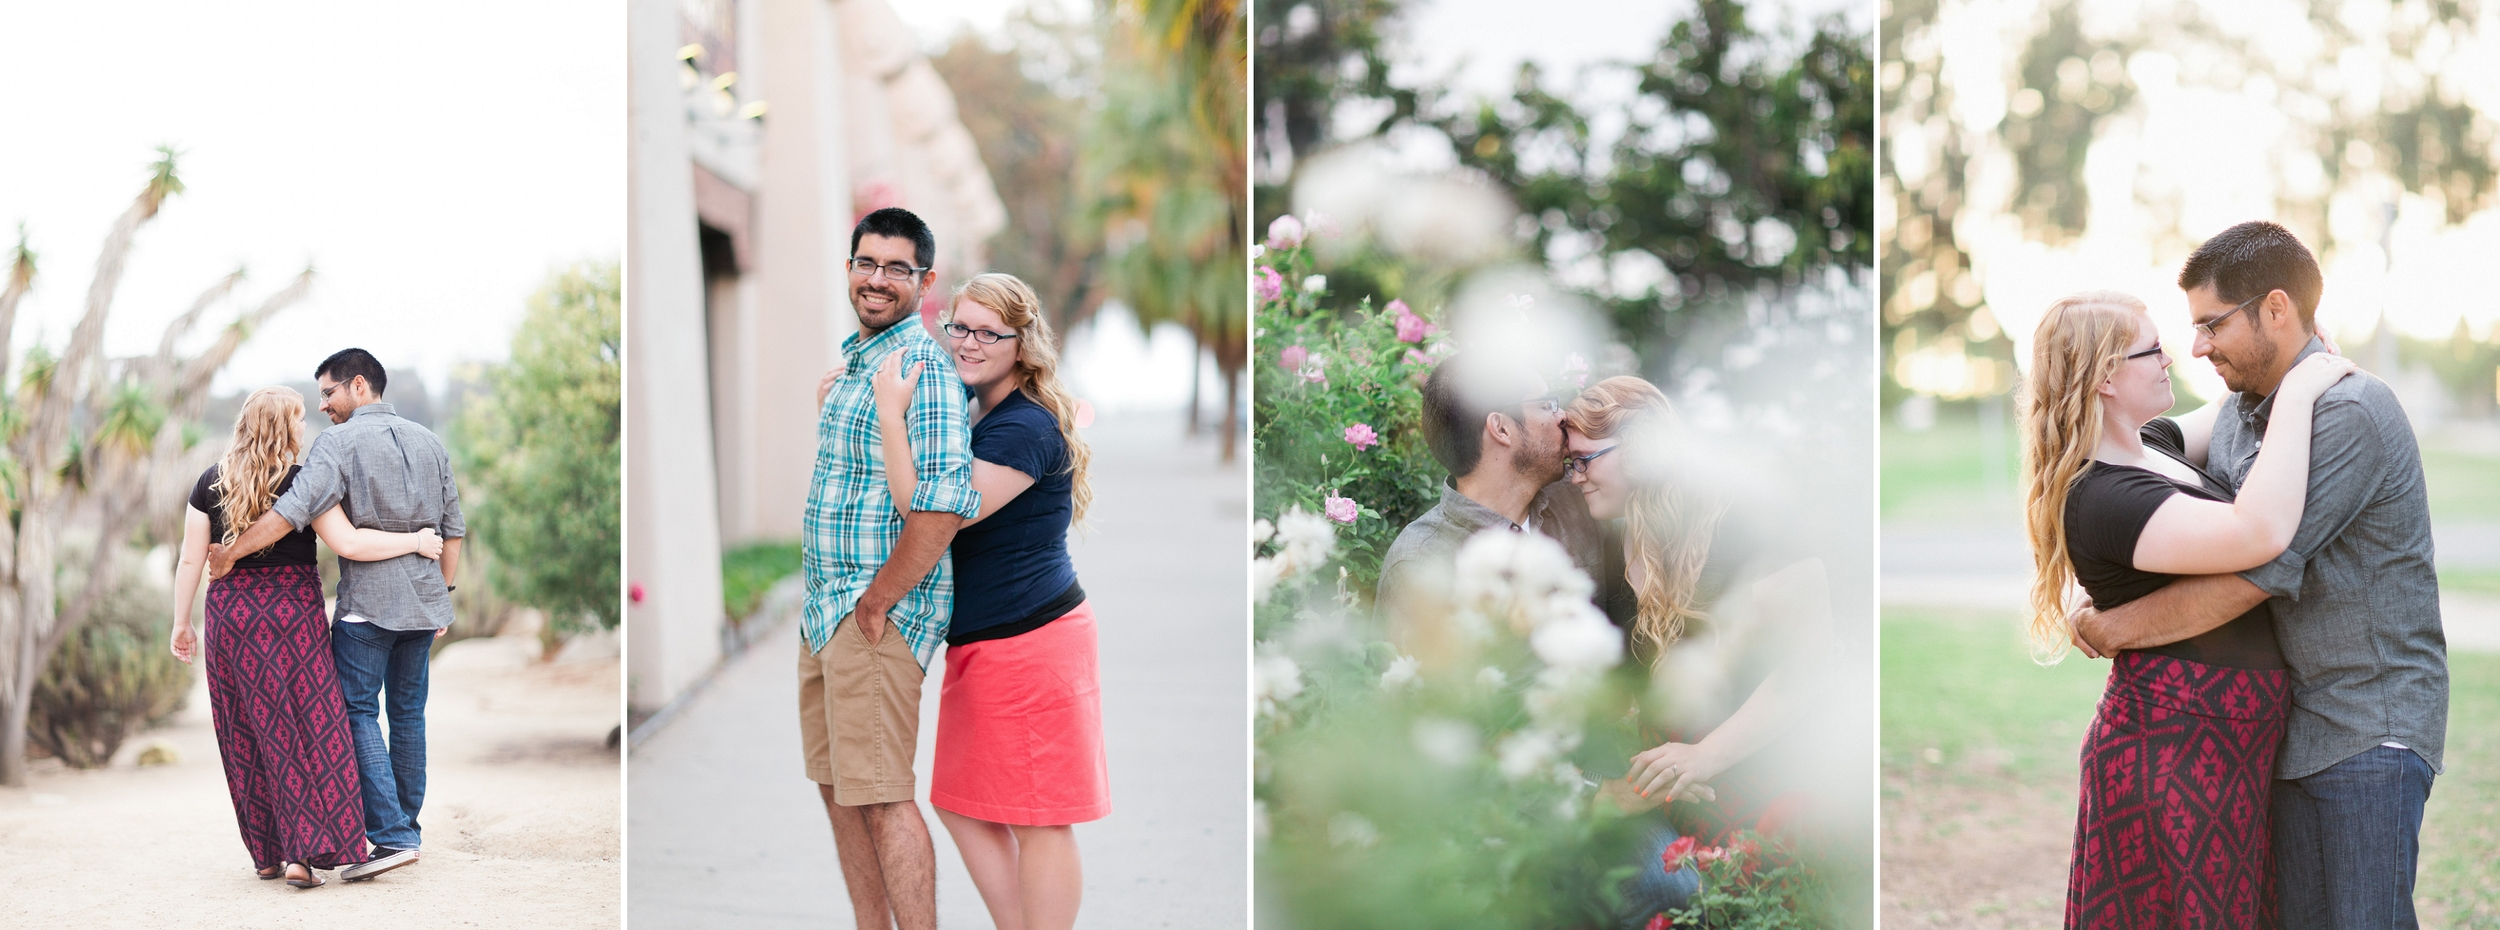 Engagement photos taken by Sposto Photography